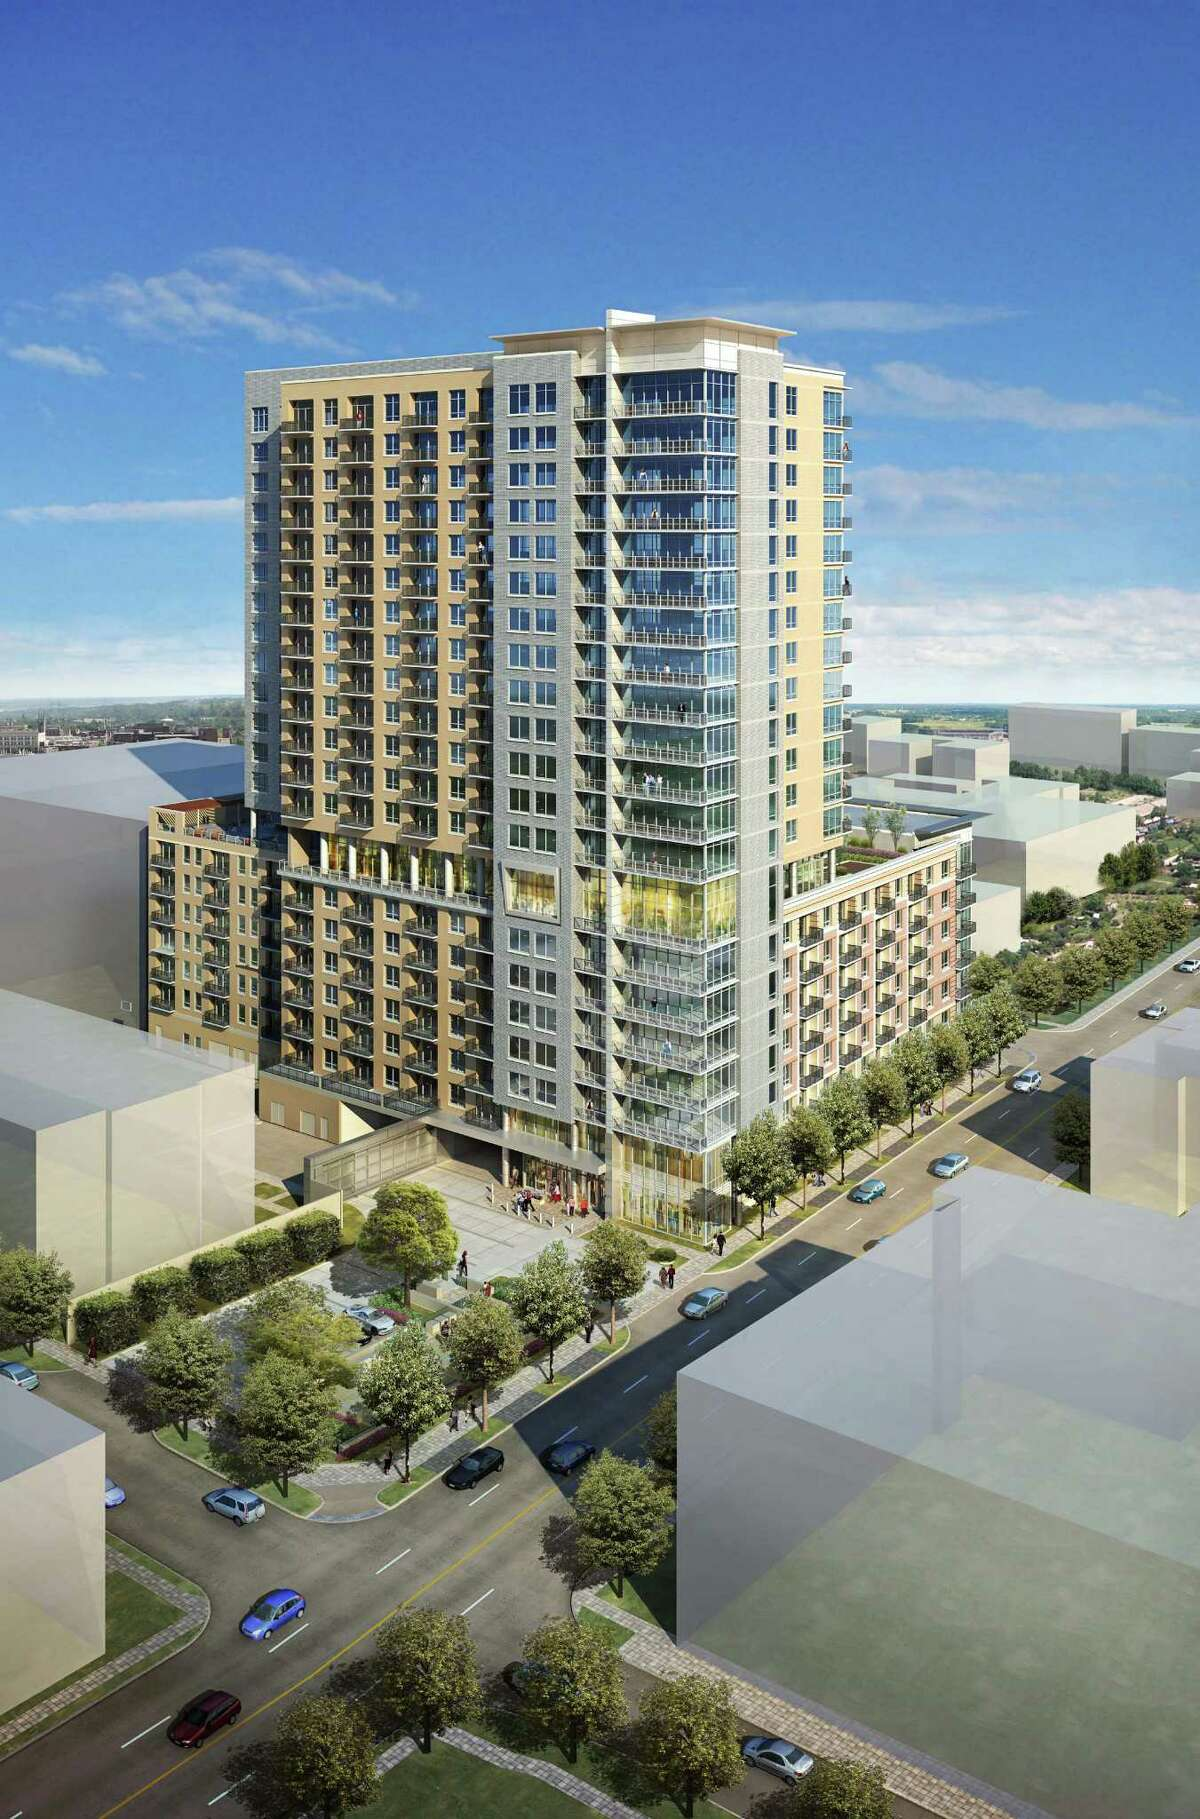 This rendering shows The Sovereign, a 21-story apartment tower that will be built at 3233 W. Dallas.